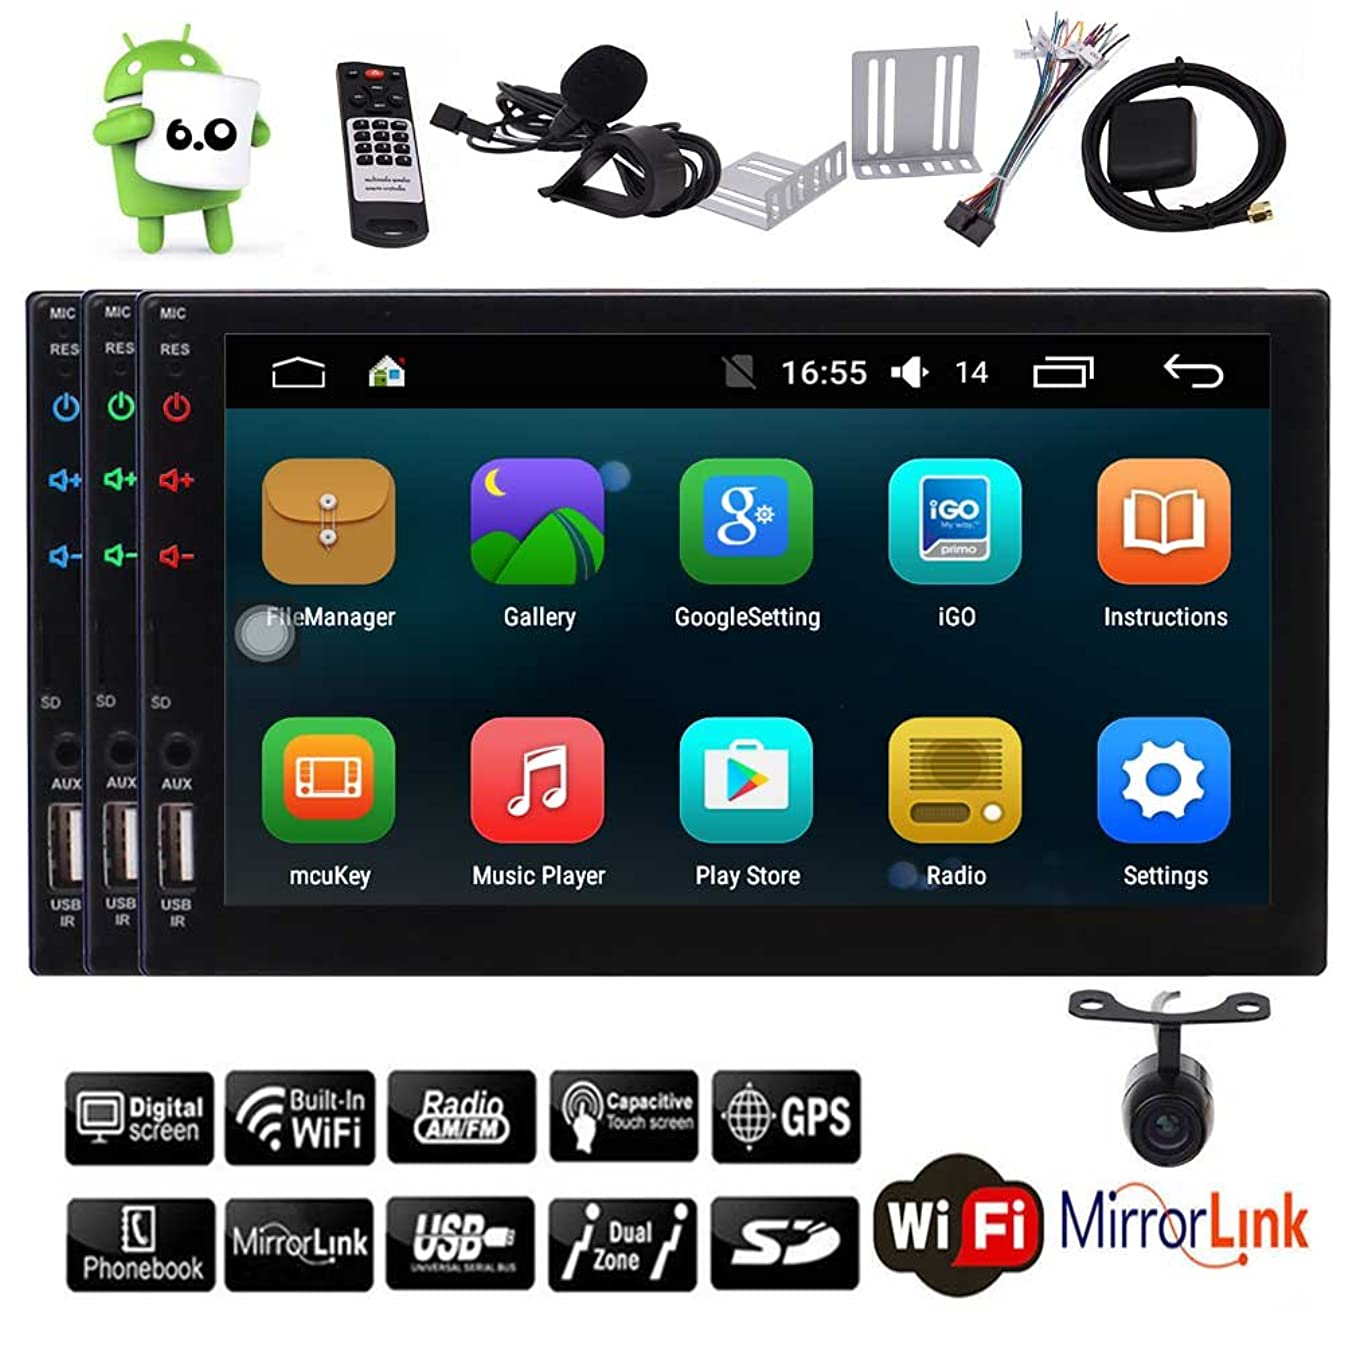 Android 6.0 Double GPS Satellite Double Din in Dash Autoradio Car Stereo GPS Navigation Hands Free Bluetooth Audio Video USB/SD Colorful Key Lights Automotive Head Unit +Rear Camera